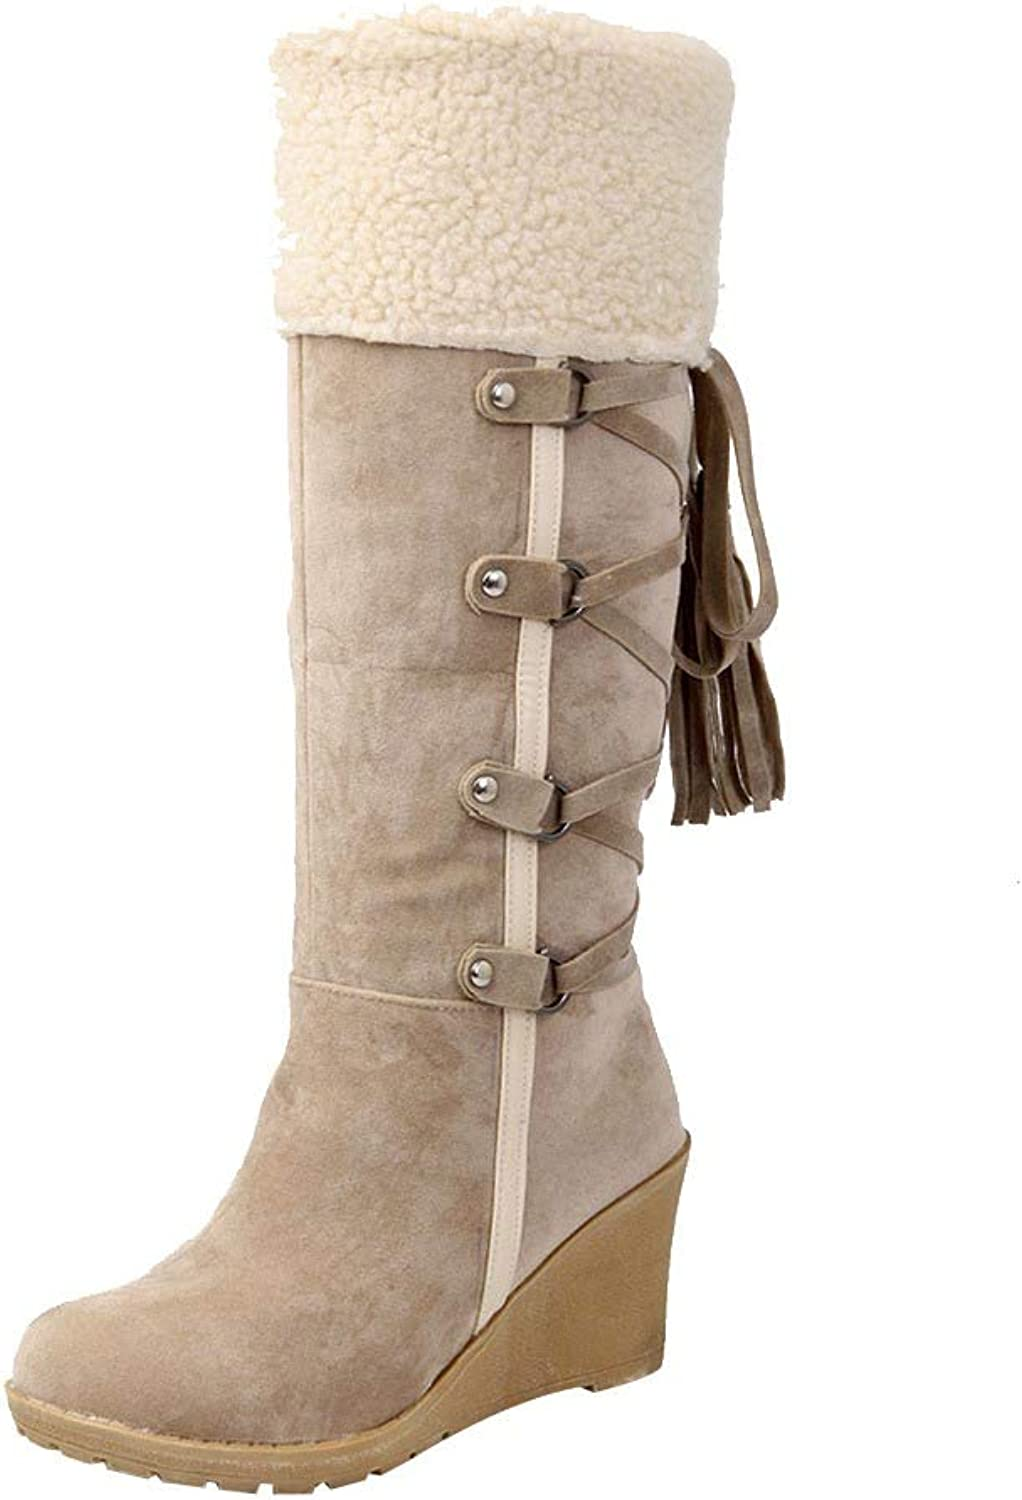 OWMEOT Women's Water Resistant Classic Leather Mid-Calf Snow Boots